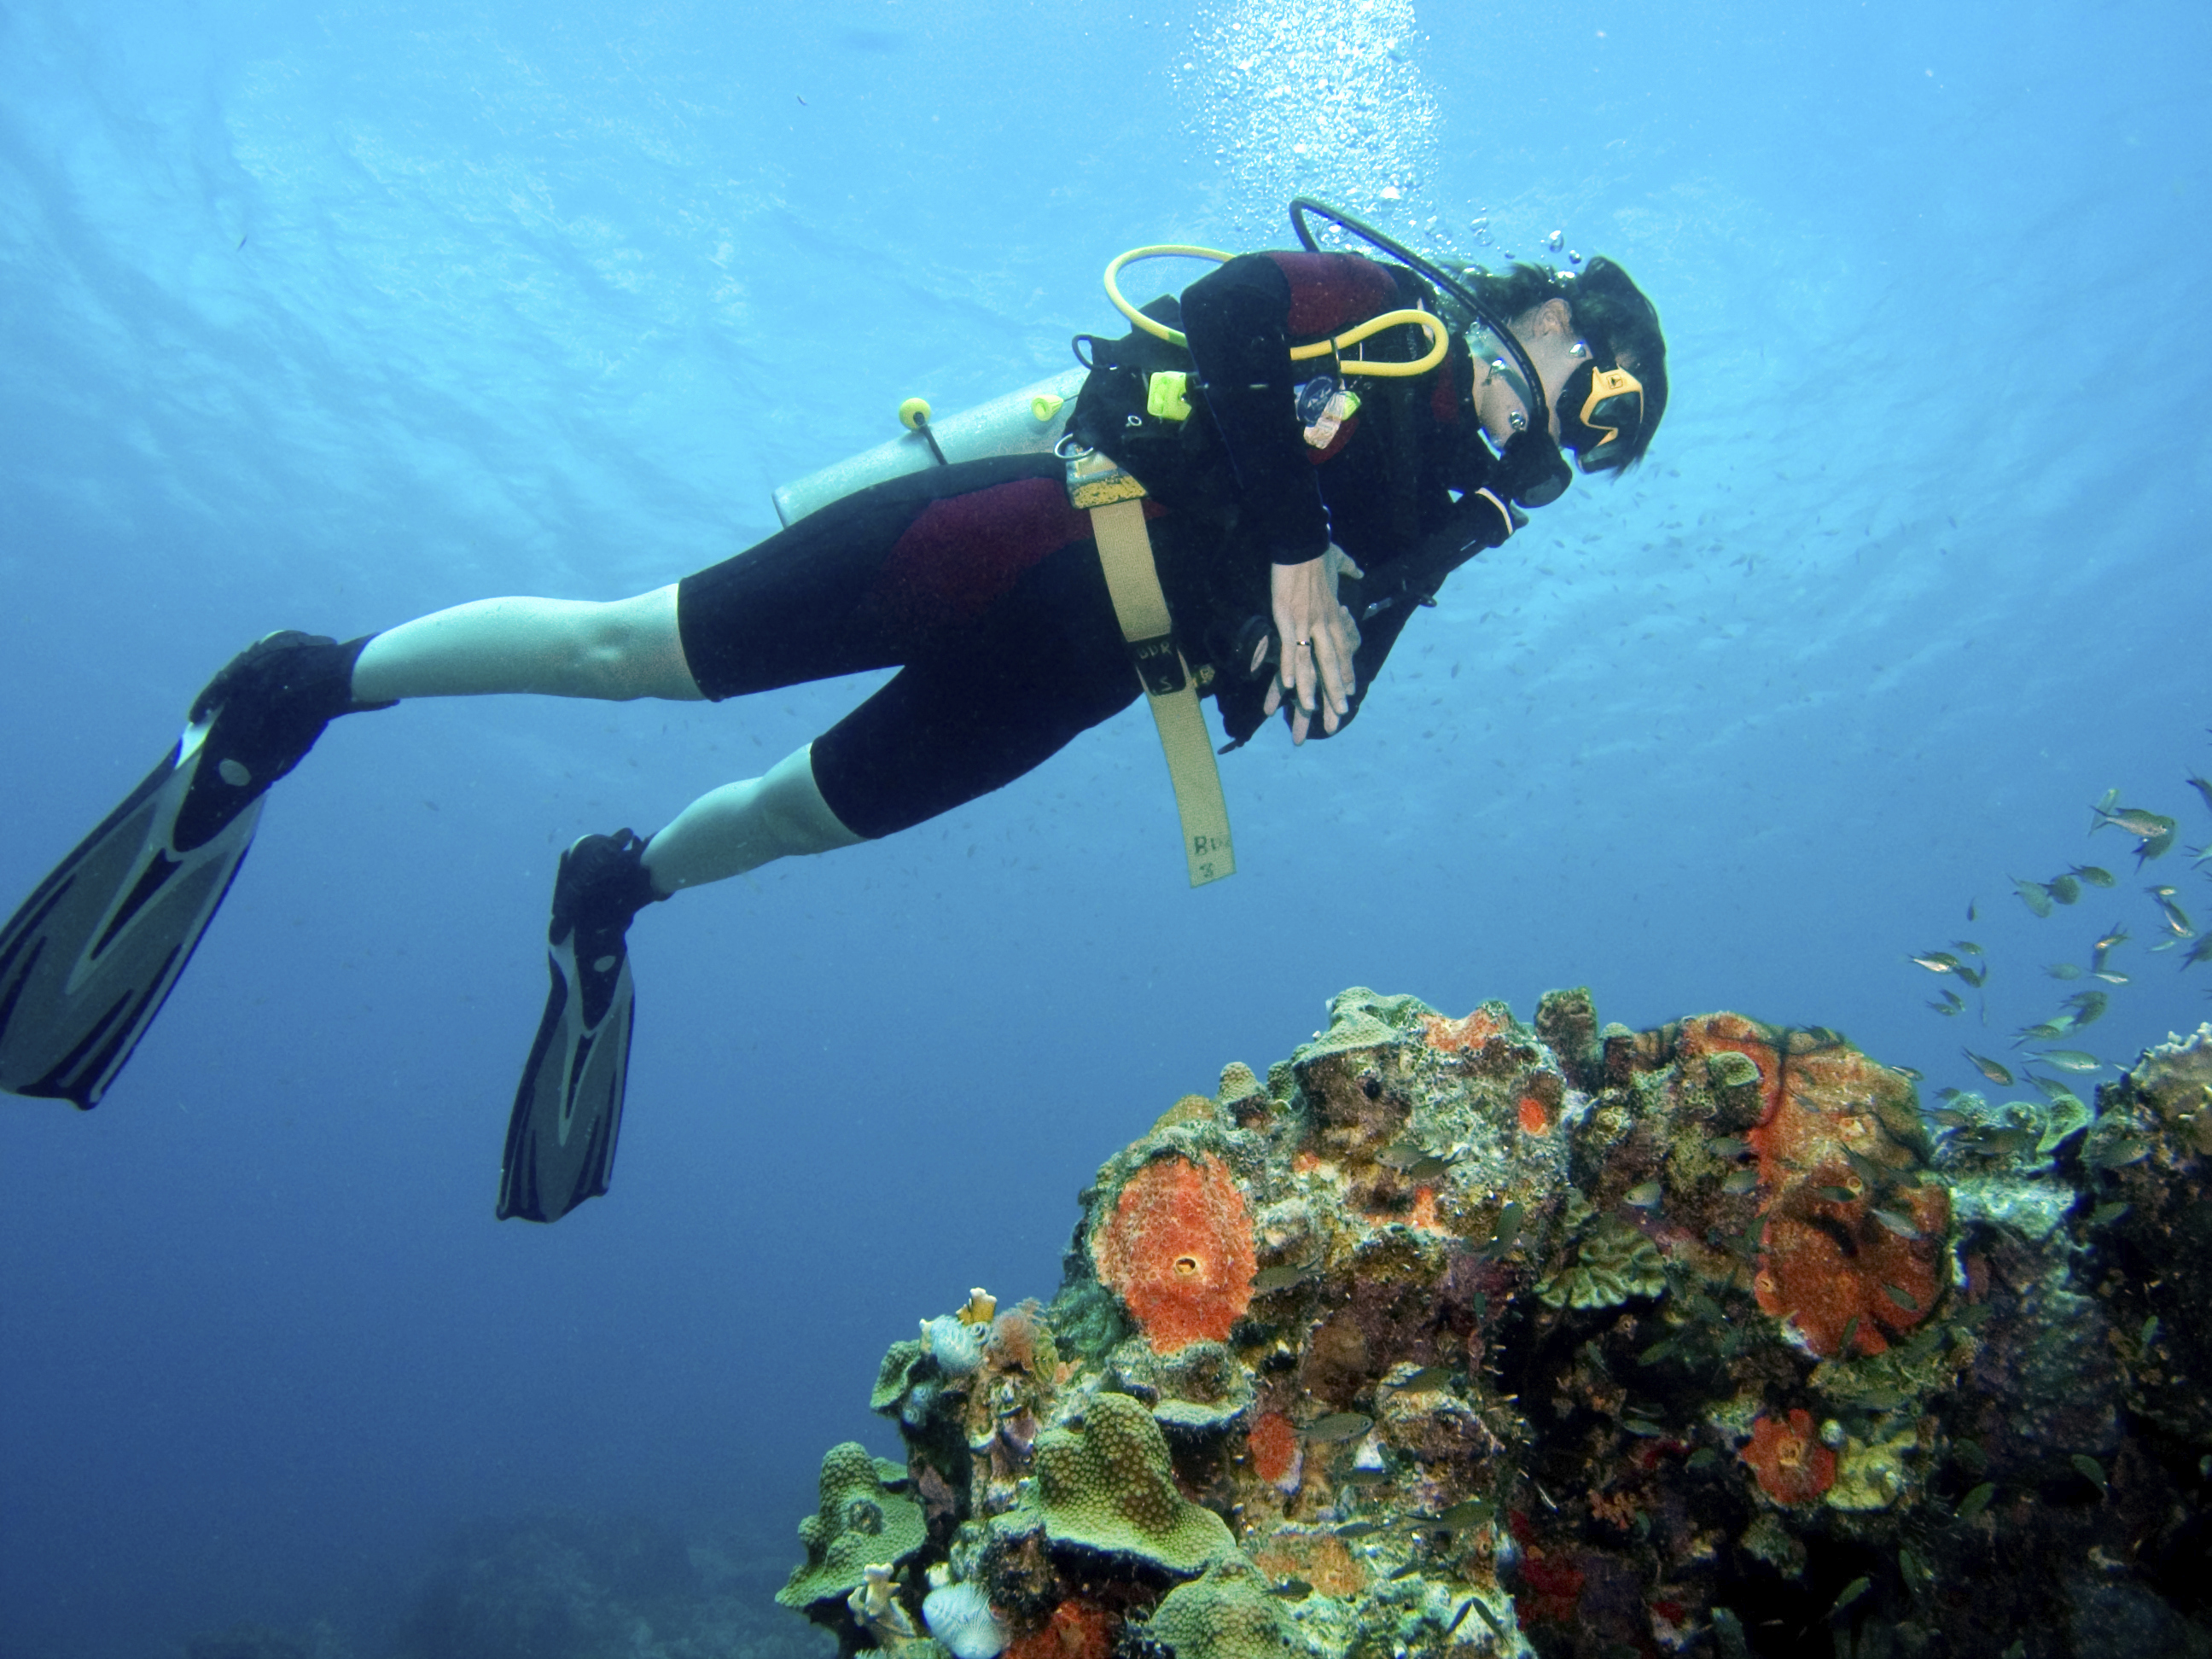 Bonaire is legendary for its diving